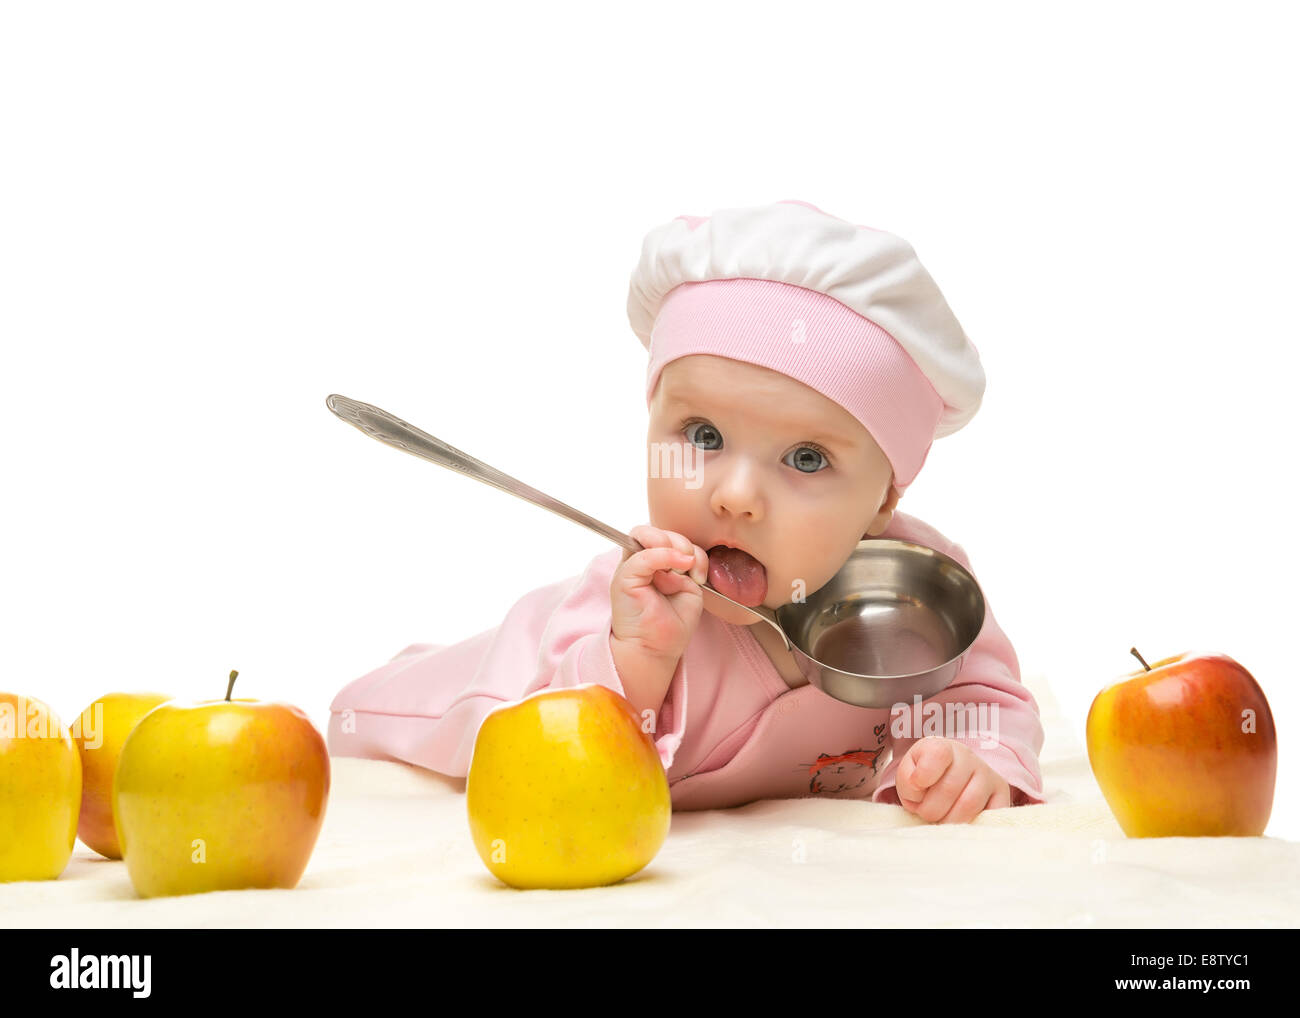 Little baby is looking into the camera and apple on the white background - Stock Image